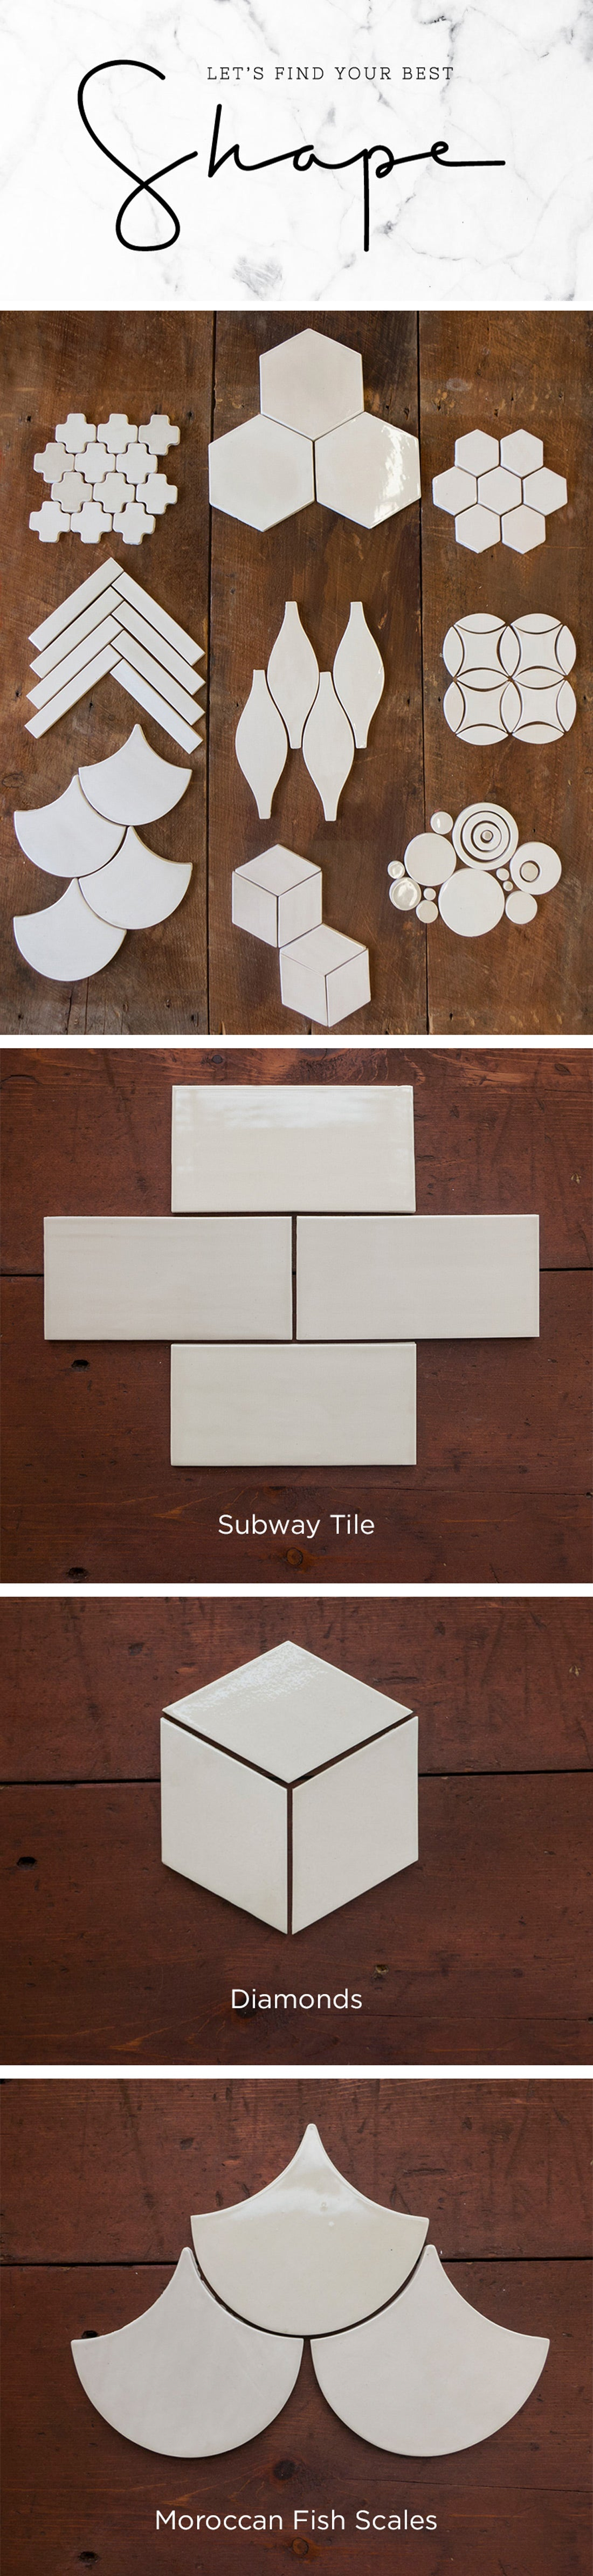 FindyourbestshapePinterest Let's Find Your Best Shape - For Tile All Residential Tile Inspiration